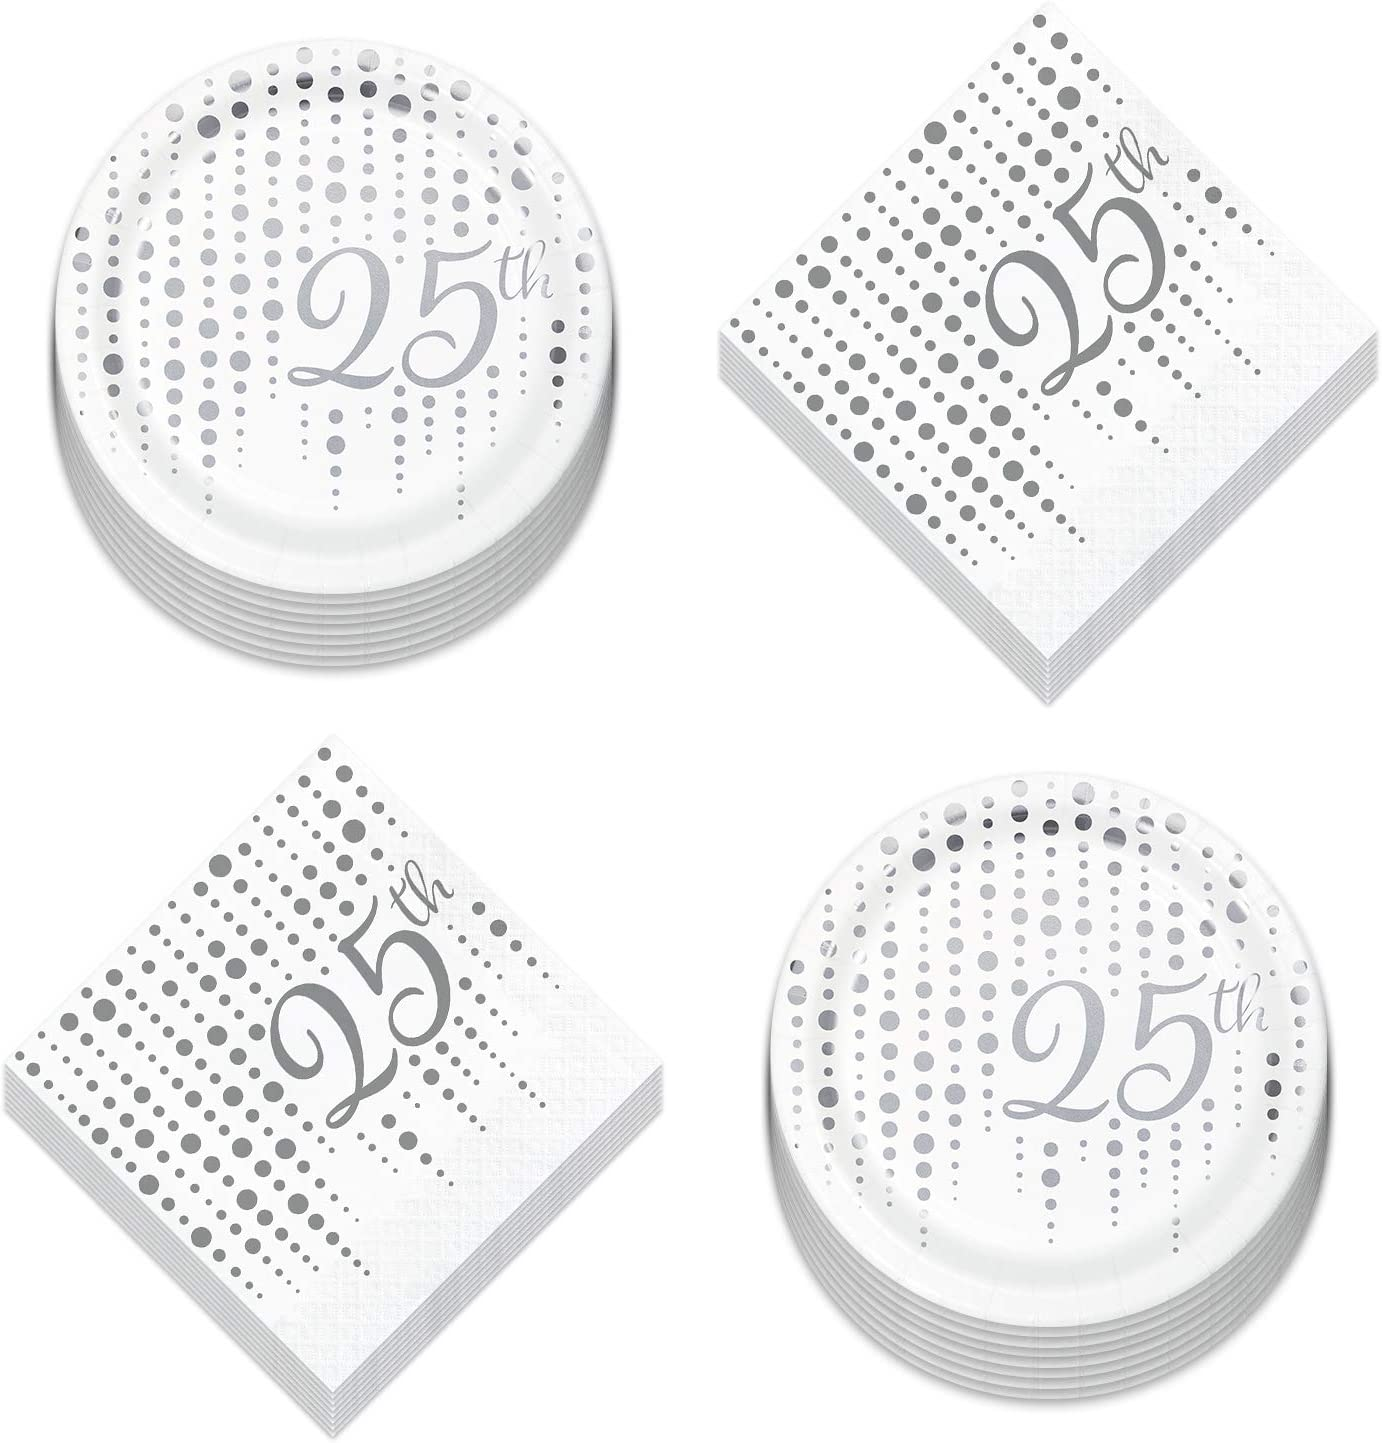 25th Party Supplies for Milestone Birthdays and Anniversaries - Silver Metallic Sparkle and Shine Paper Dessert Plates and Beverage Napkins (Serves 16)